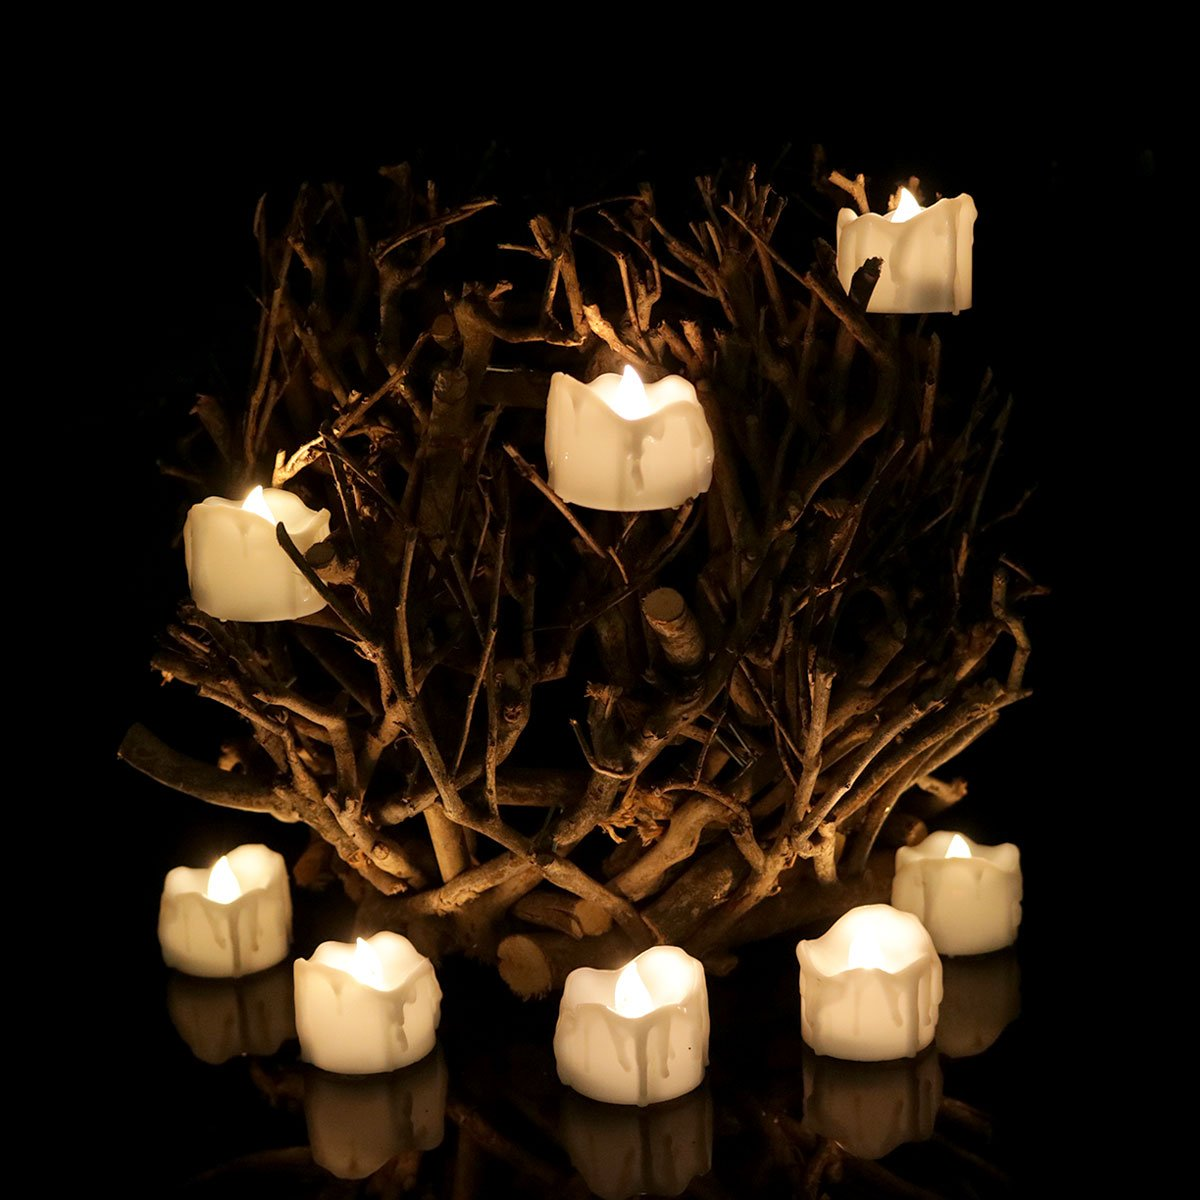 Flameless Battery Operated Tealights with Timer with Decor Rose Petals 6 Hrs on 18 Hrs Off Youngerbaby 24pcs Warm White Flickering Timing Function LED Tea Light Candles for Wedding Christmas Party